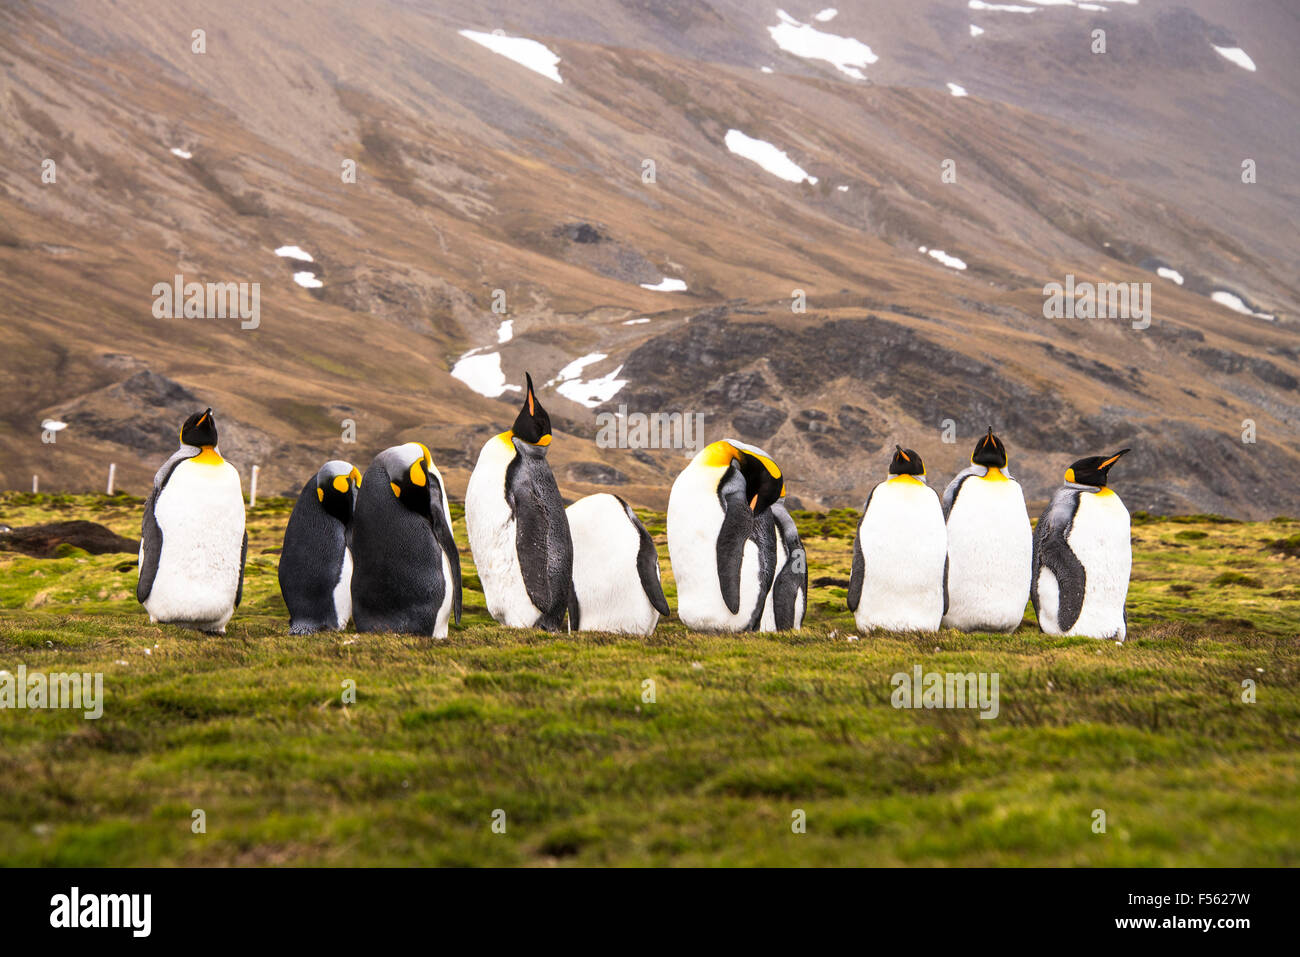 A group Of King Penguins! Stock Photo